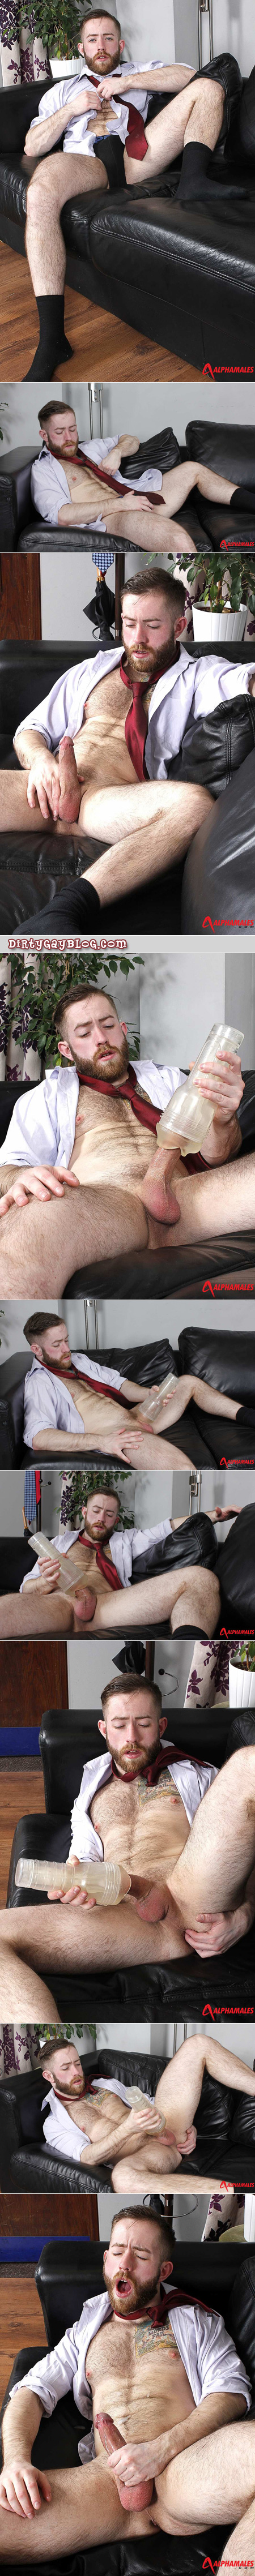 Ginger cub in a dress clothes jacking off on the office couch with a Fleshjack.